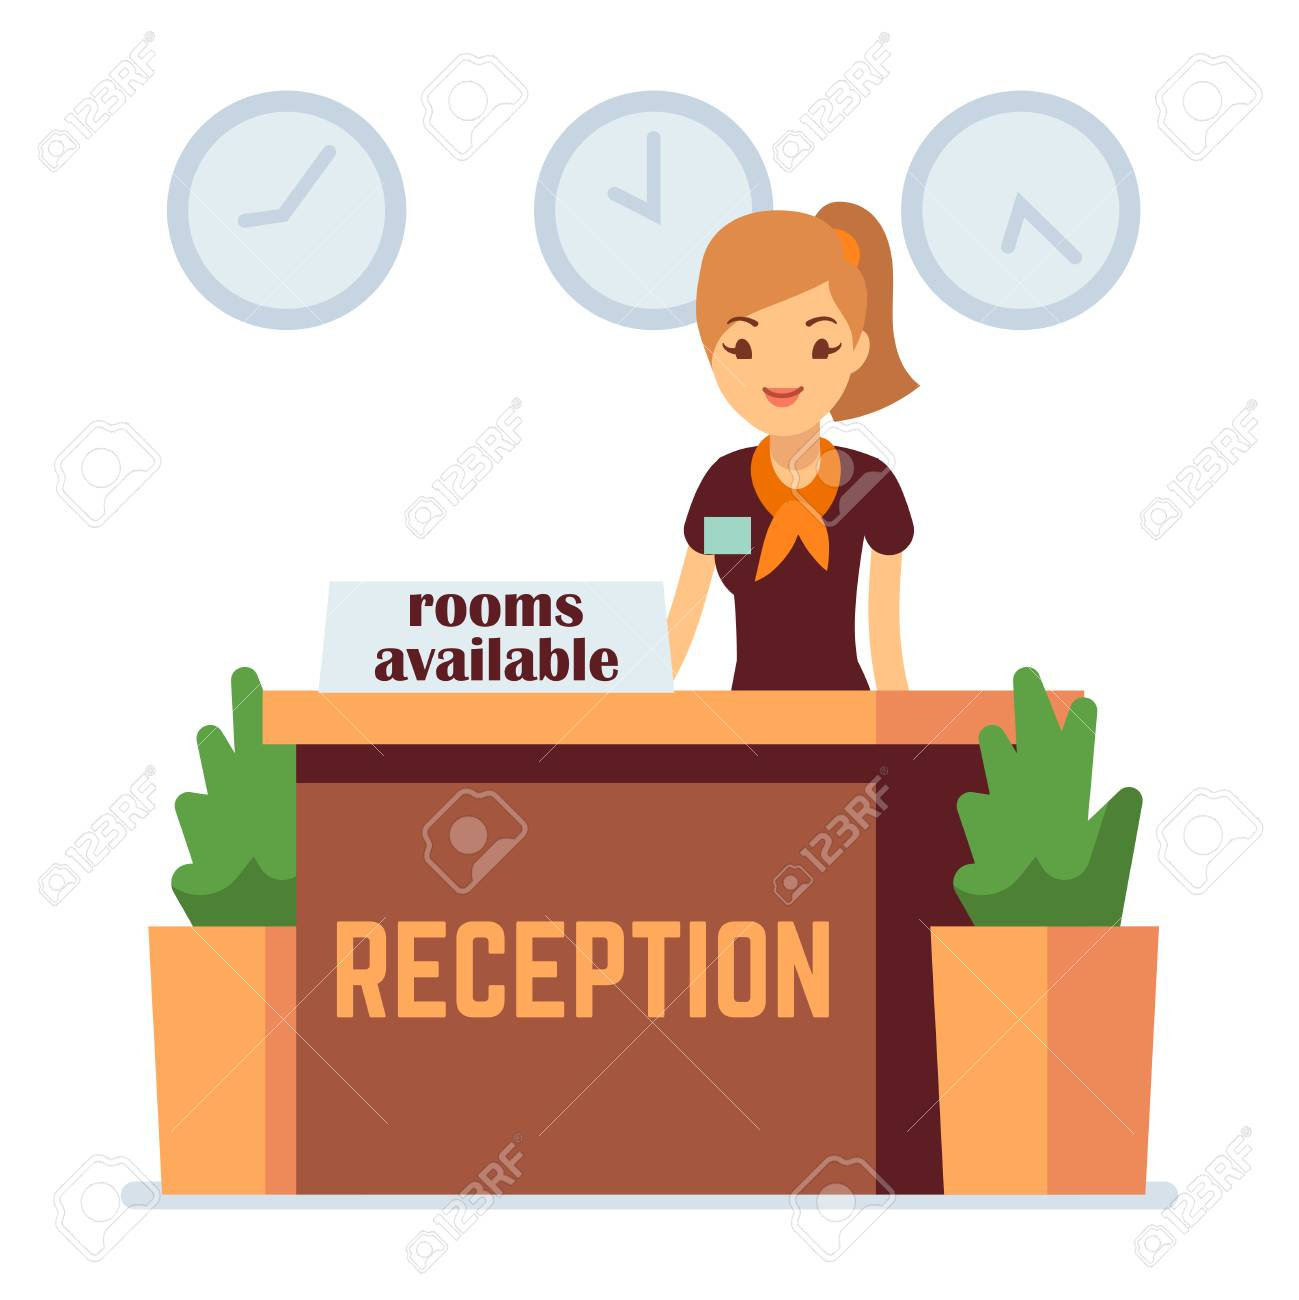 Hotel Or Hostel Reception With Cartoon Girl Rooms Available Royalty Free Cliparts Vectors And Stock Illustration Image 125339248